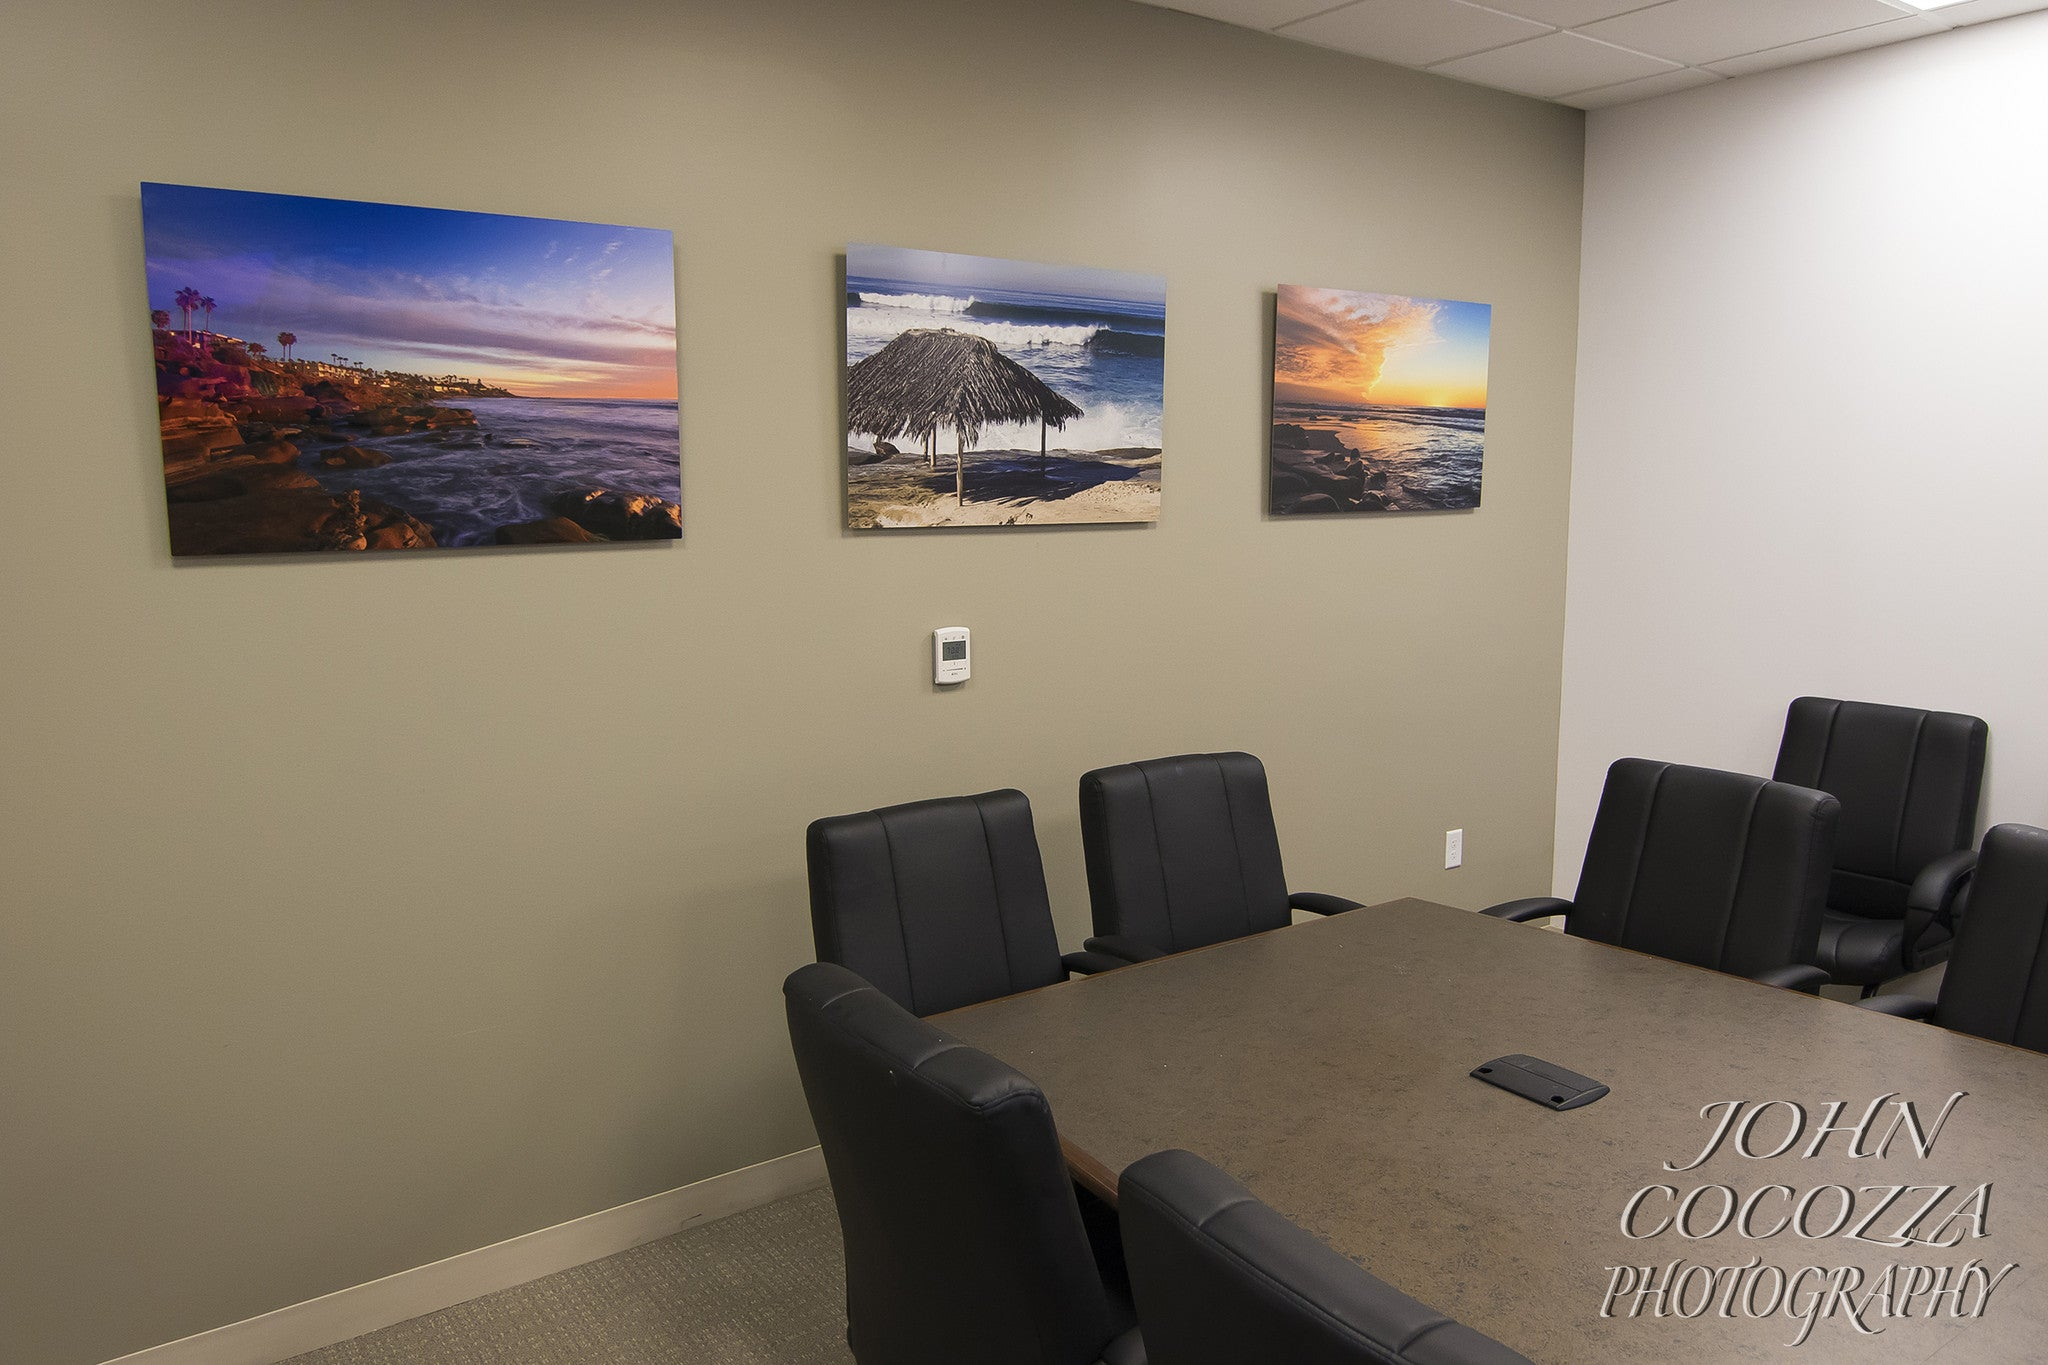 metal prints of landscapes for sale as artwork in office decor